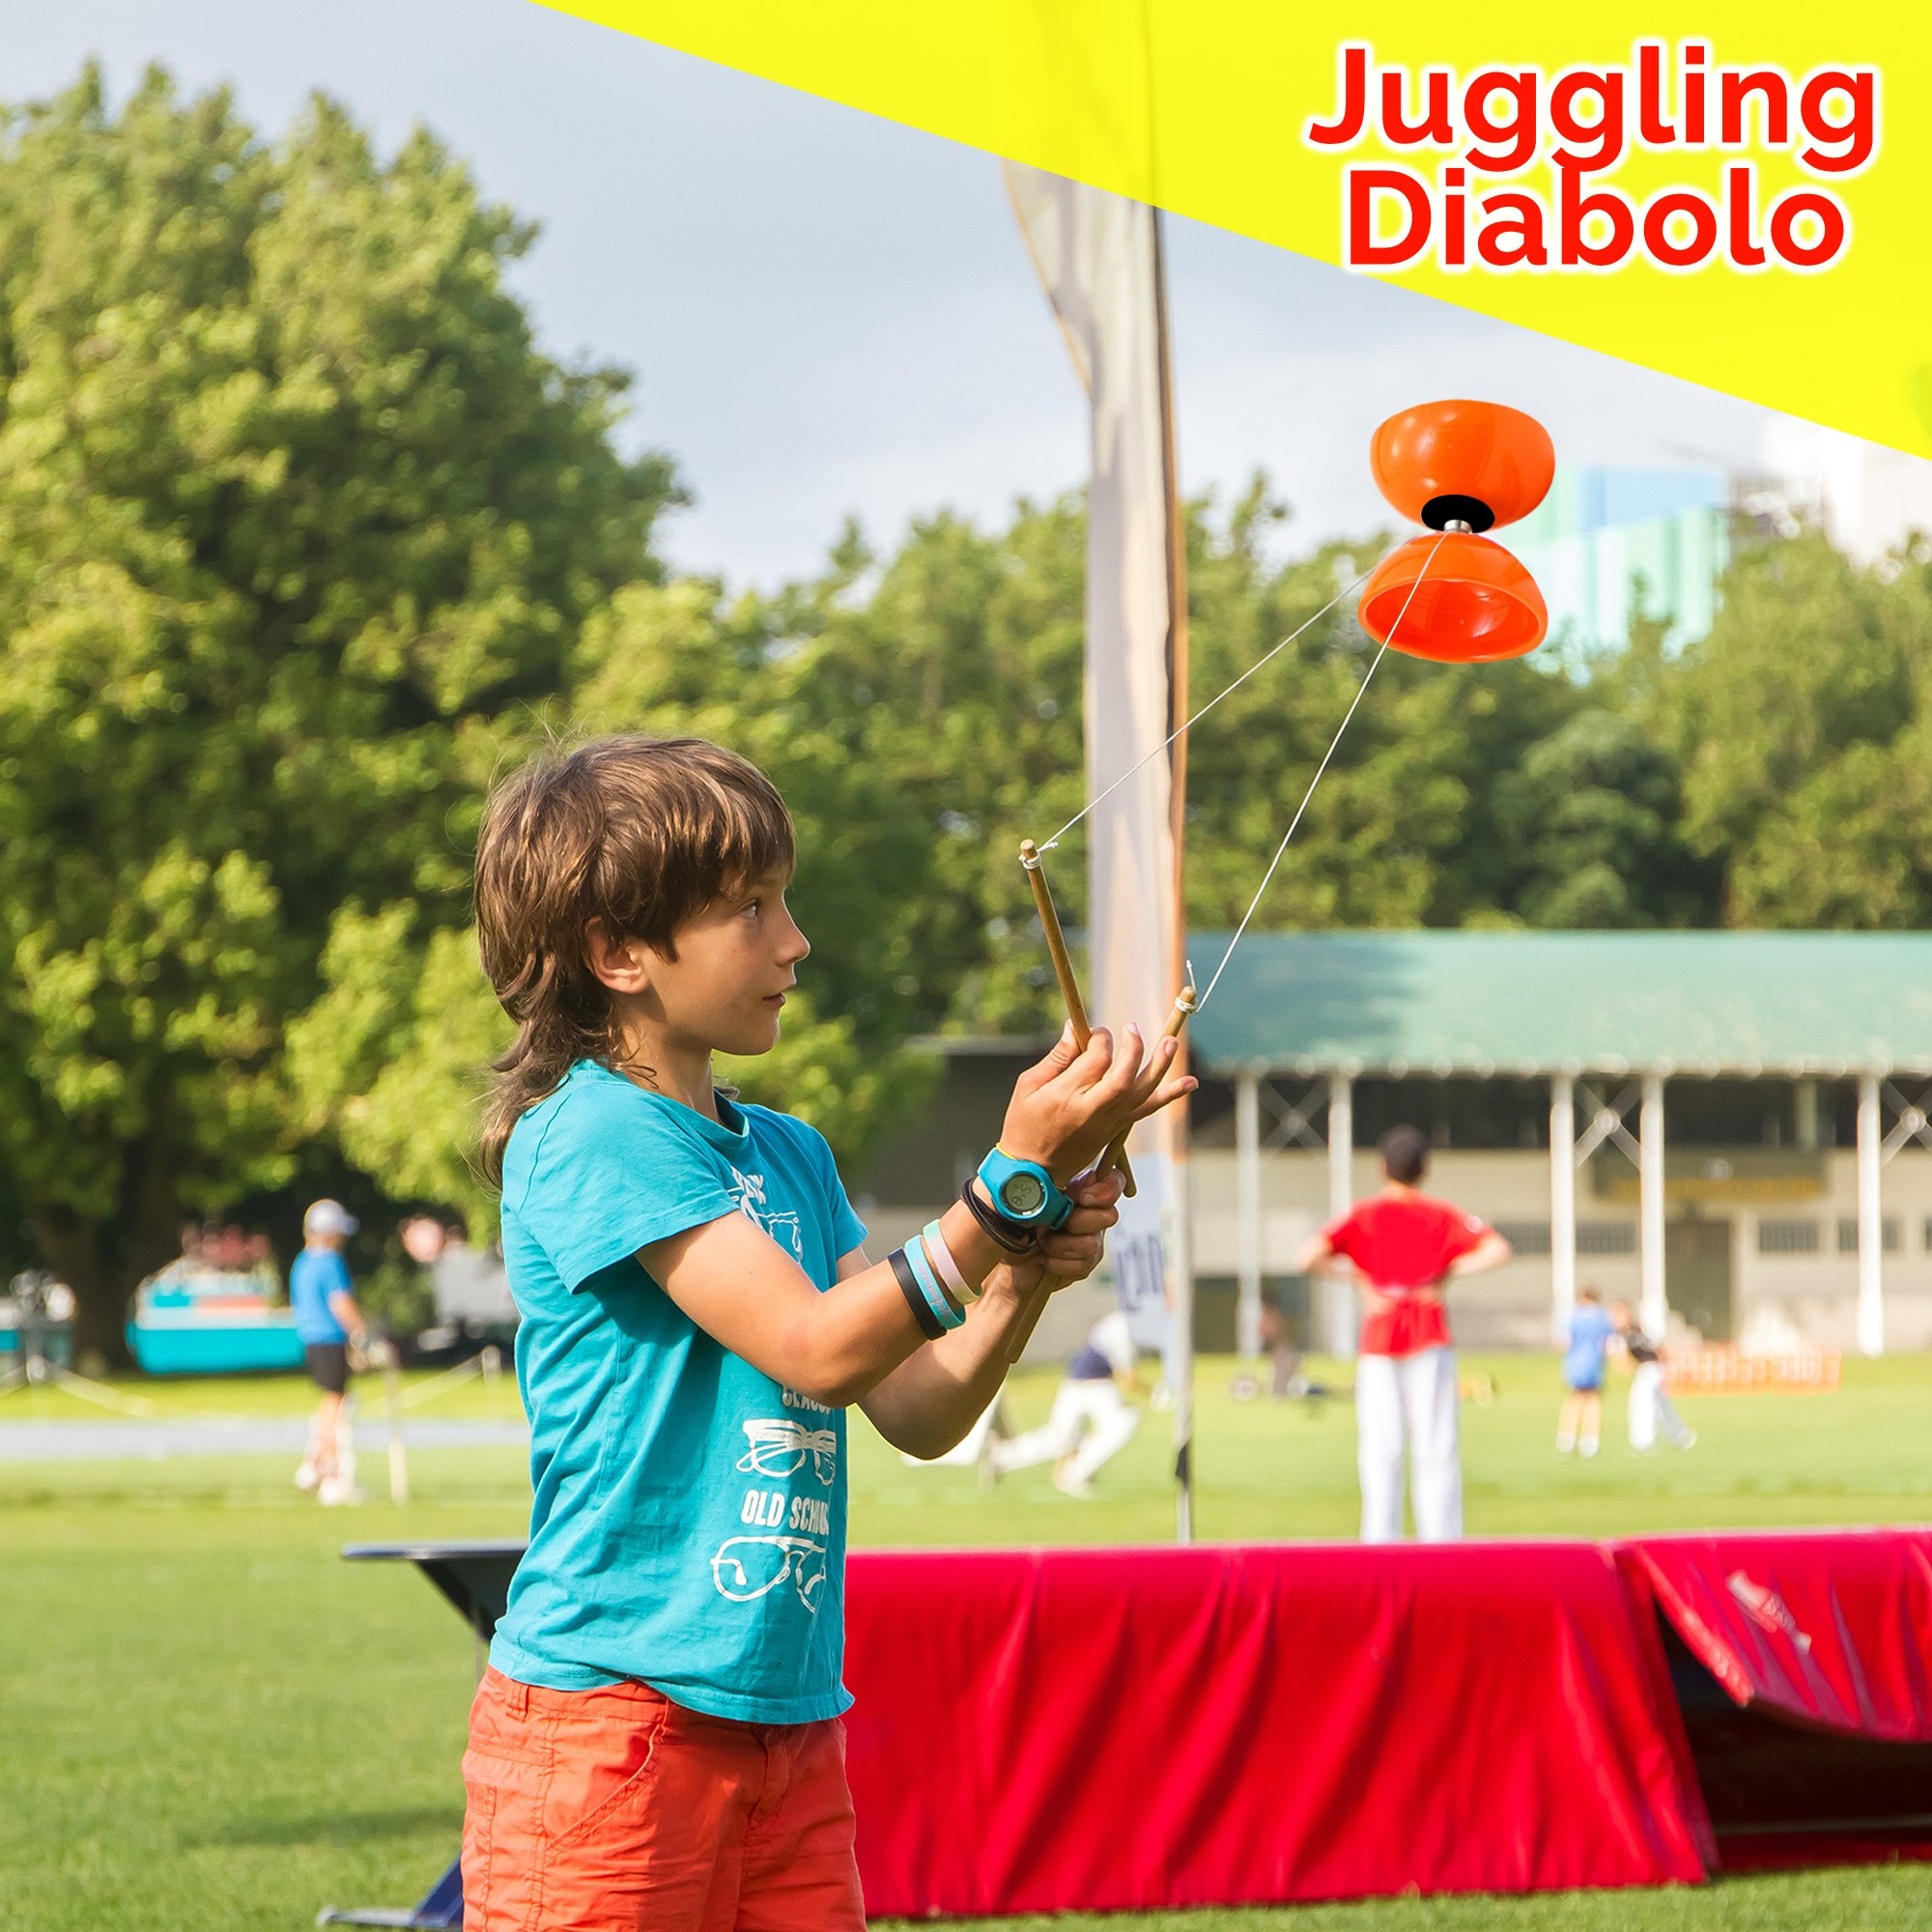 Beginners Juggling Kit - Balls (3), Pins (3), Plates (3), Rings (3), Chinese Yoyo Diabolo Advanced Set Cool Fun Unique Toy Gift Set For Boys and Girls by Juggle Mania (Image #5)